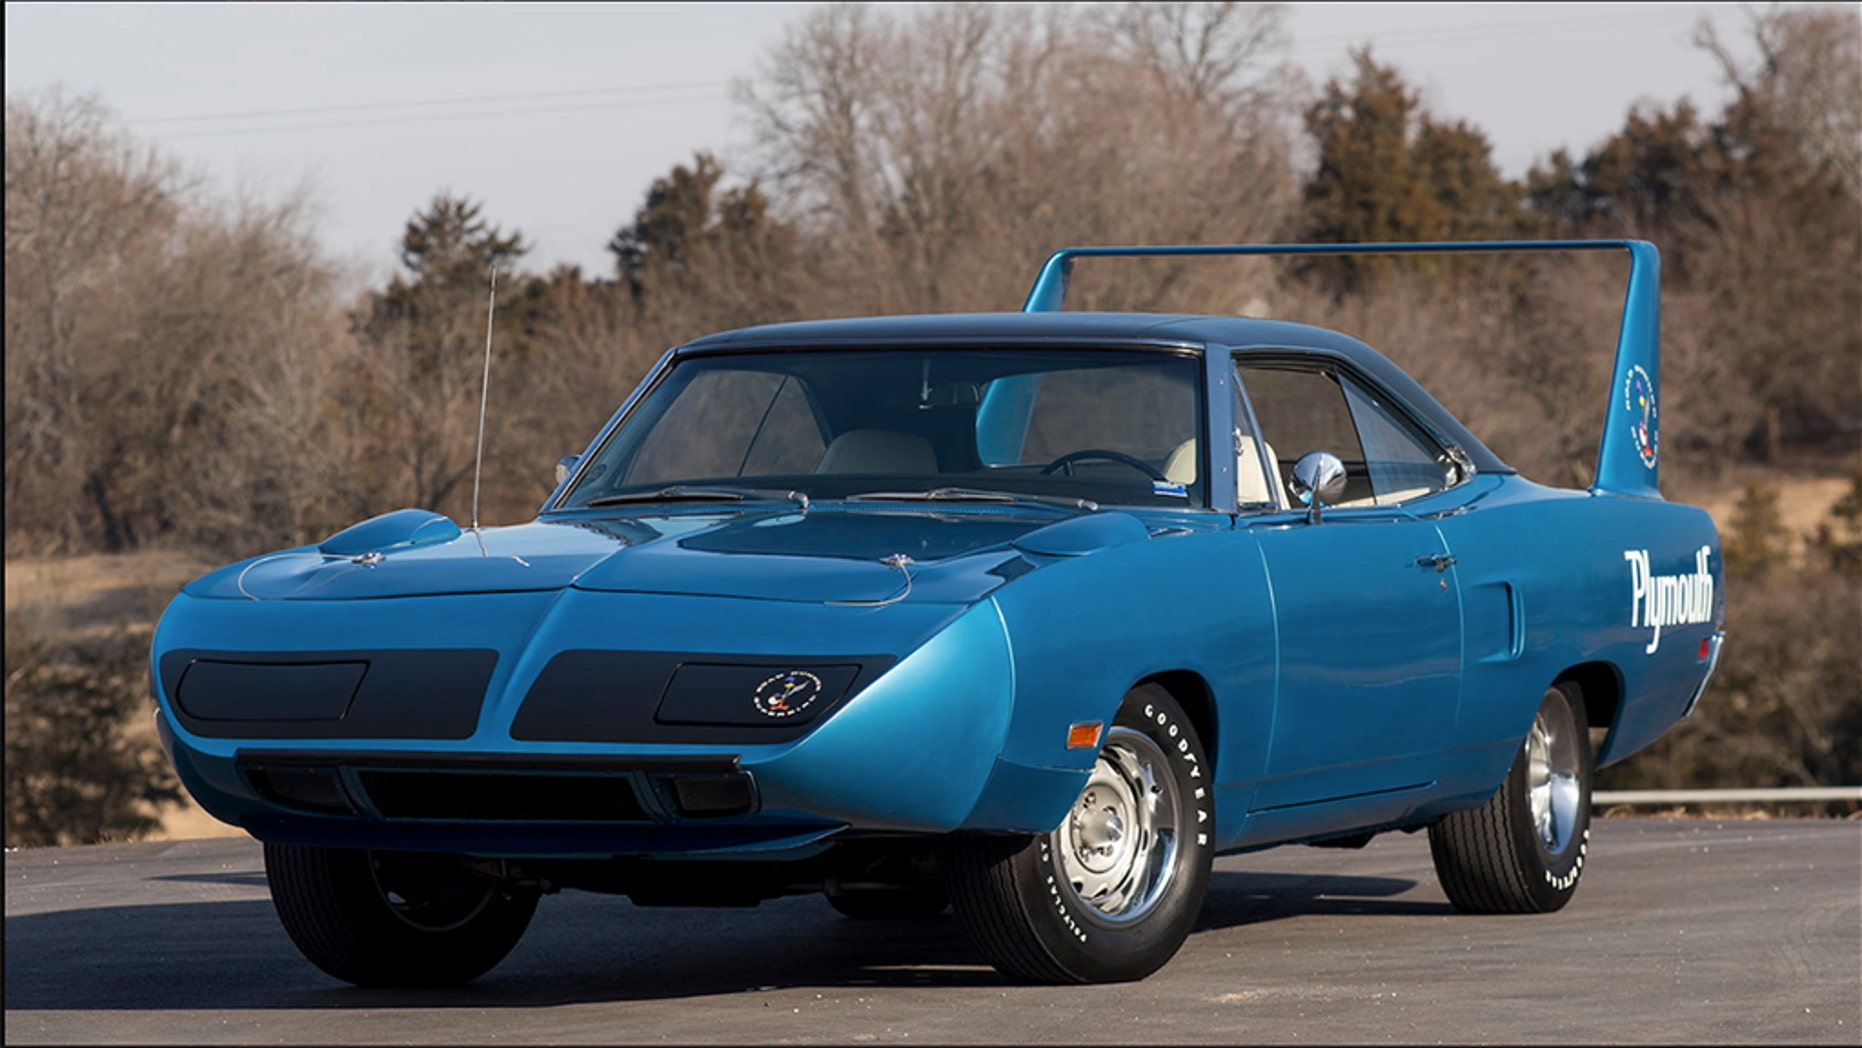 A 1970 Plymouth Superbird is up for auction in Texas and is expected to go for six figures.